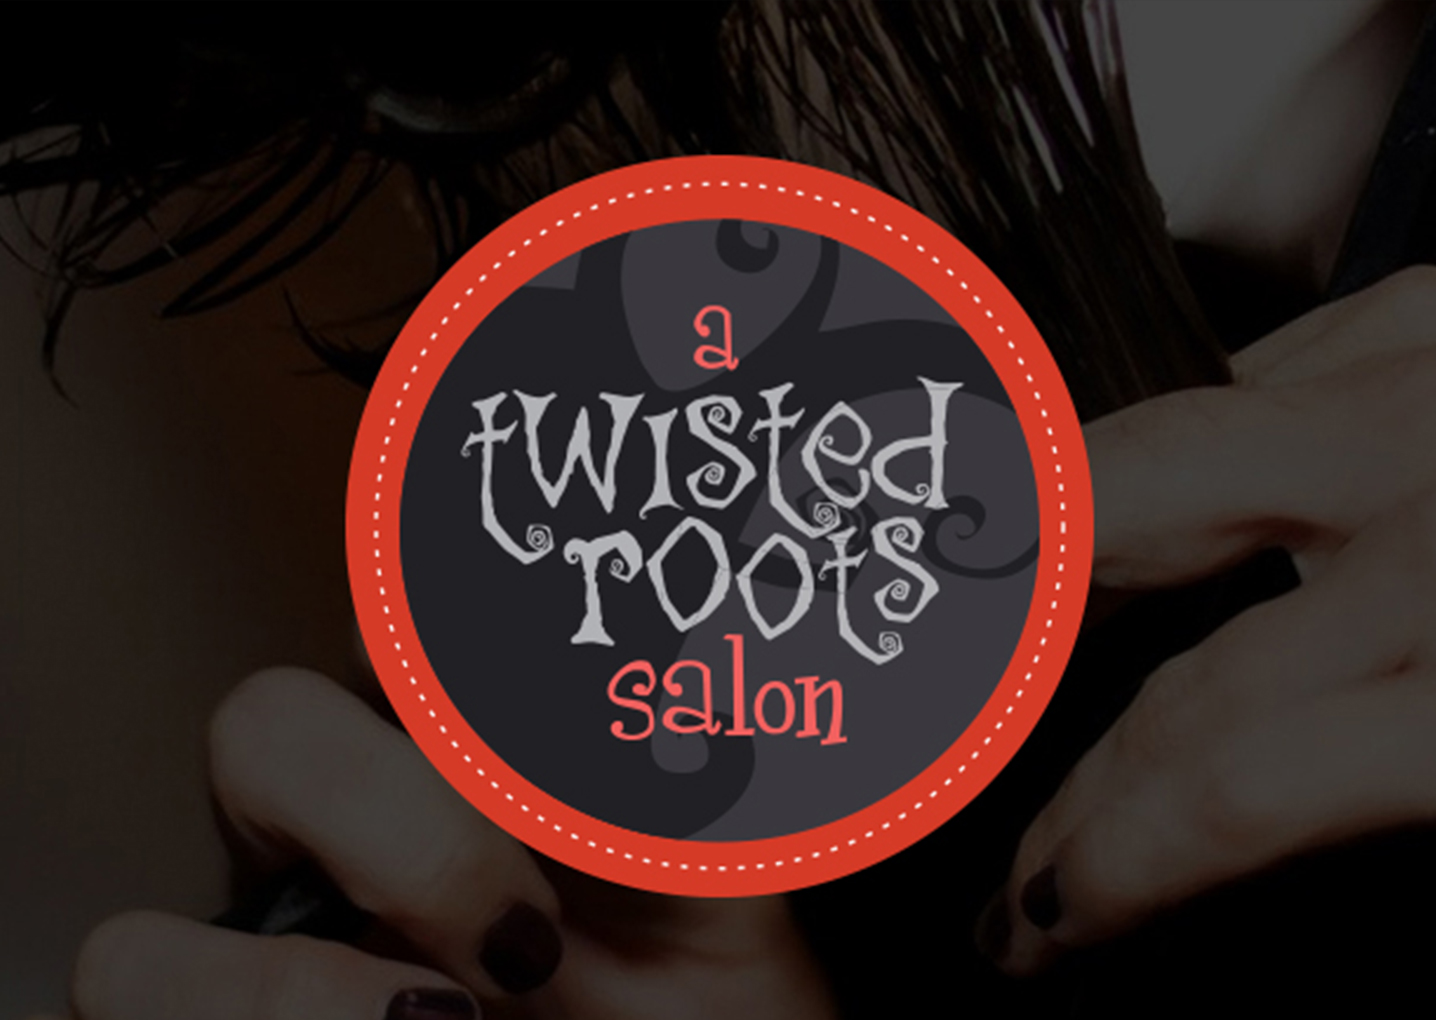 A Twisted Roots Salon